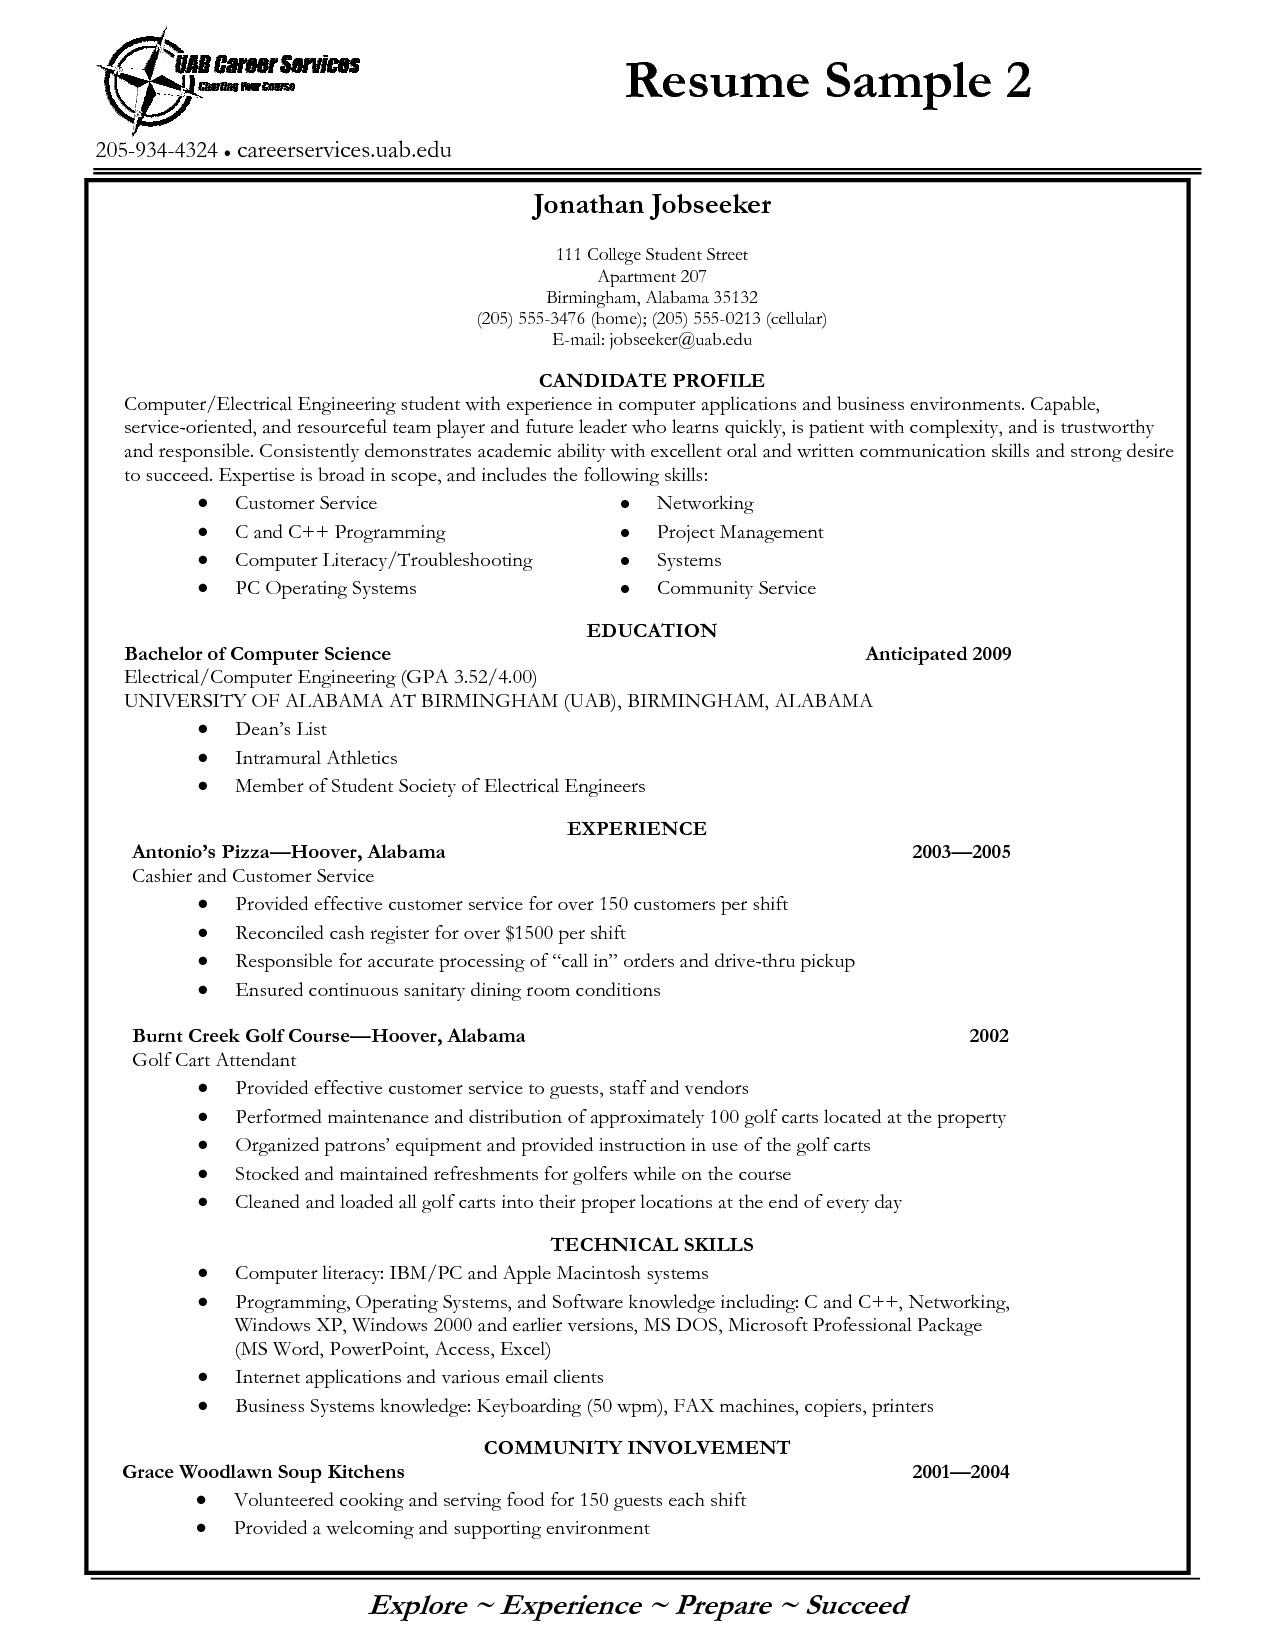 Resume Template Student Tags College Graduate Resume No Experience College Graduate Resume